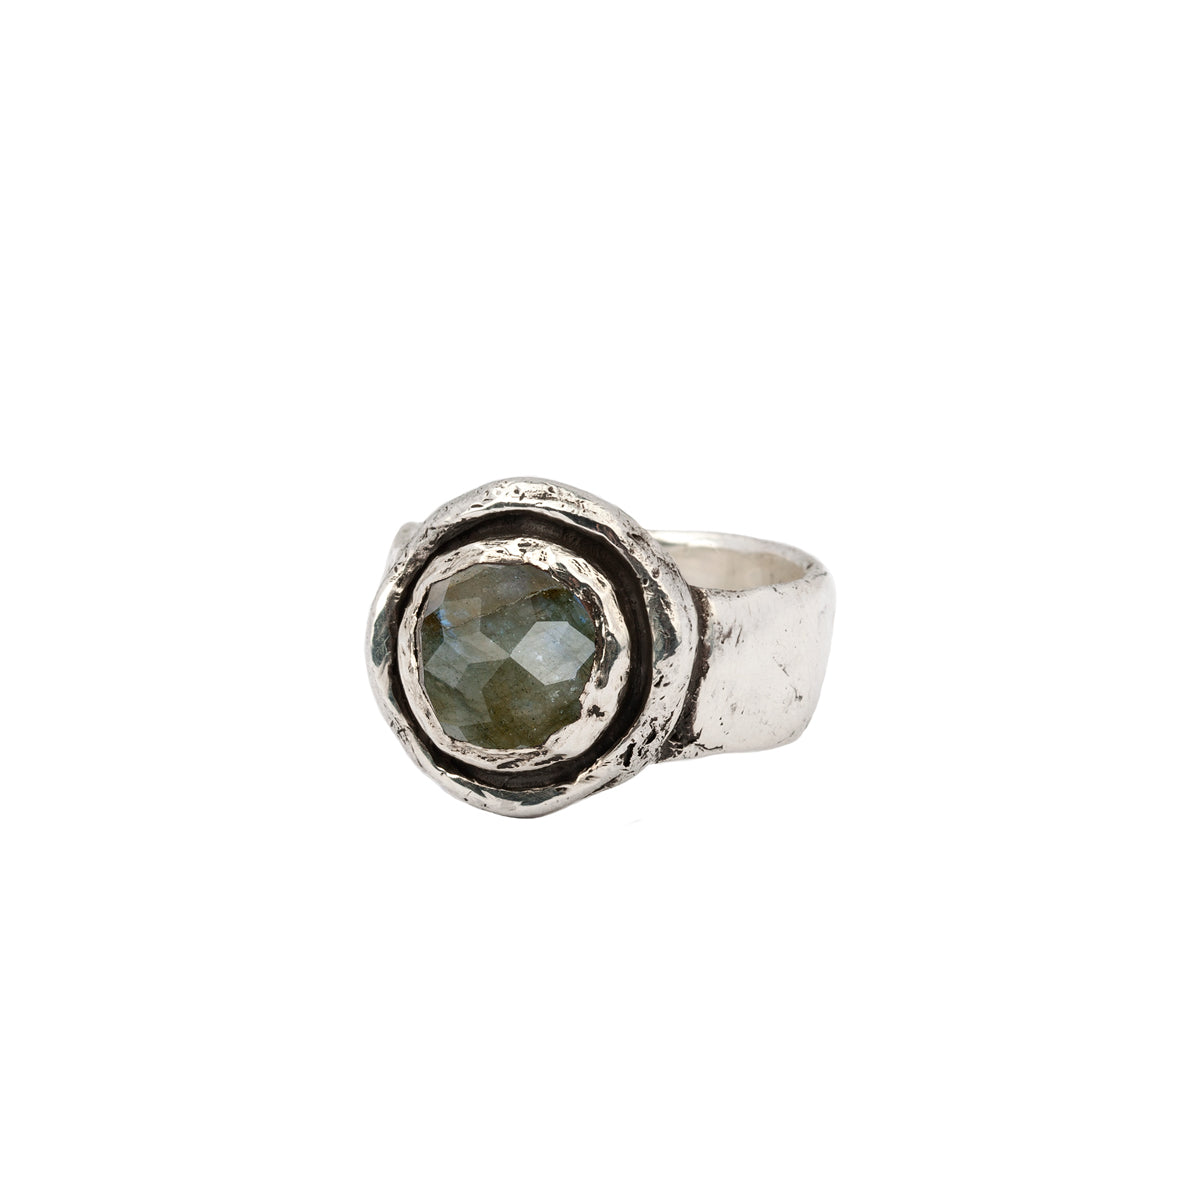 Labradorite Faceted Stone Talisman Ring